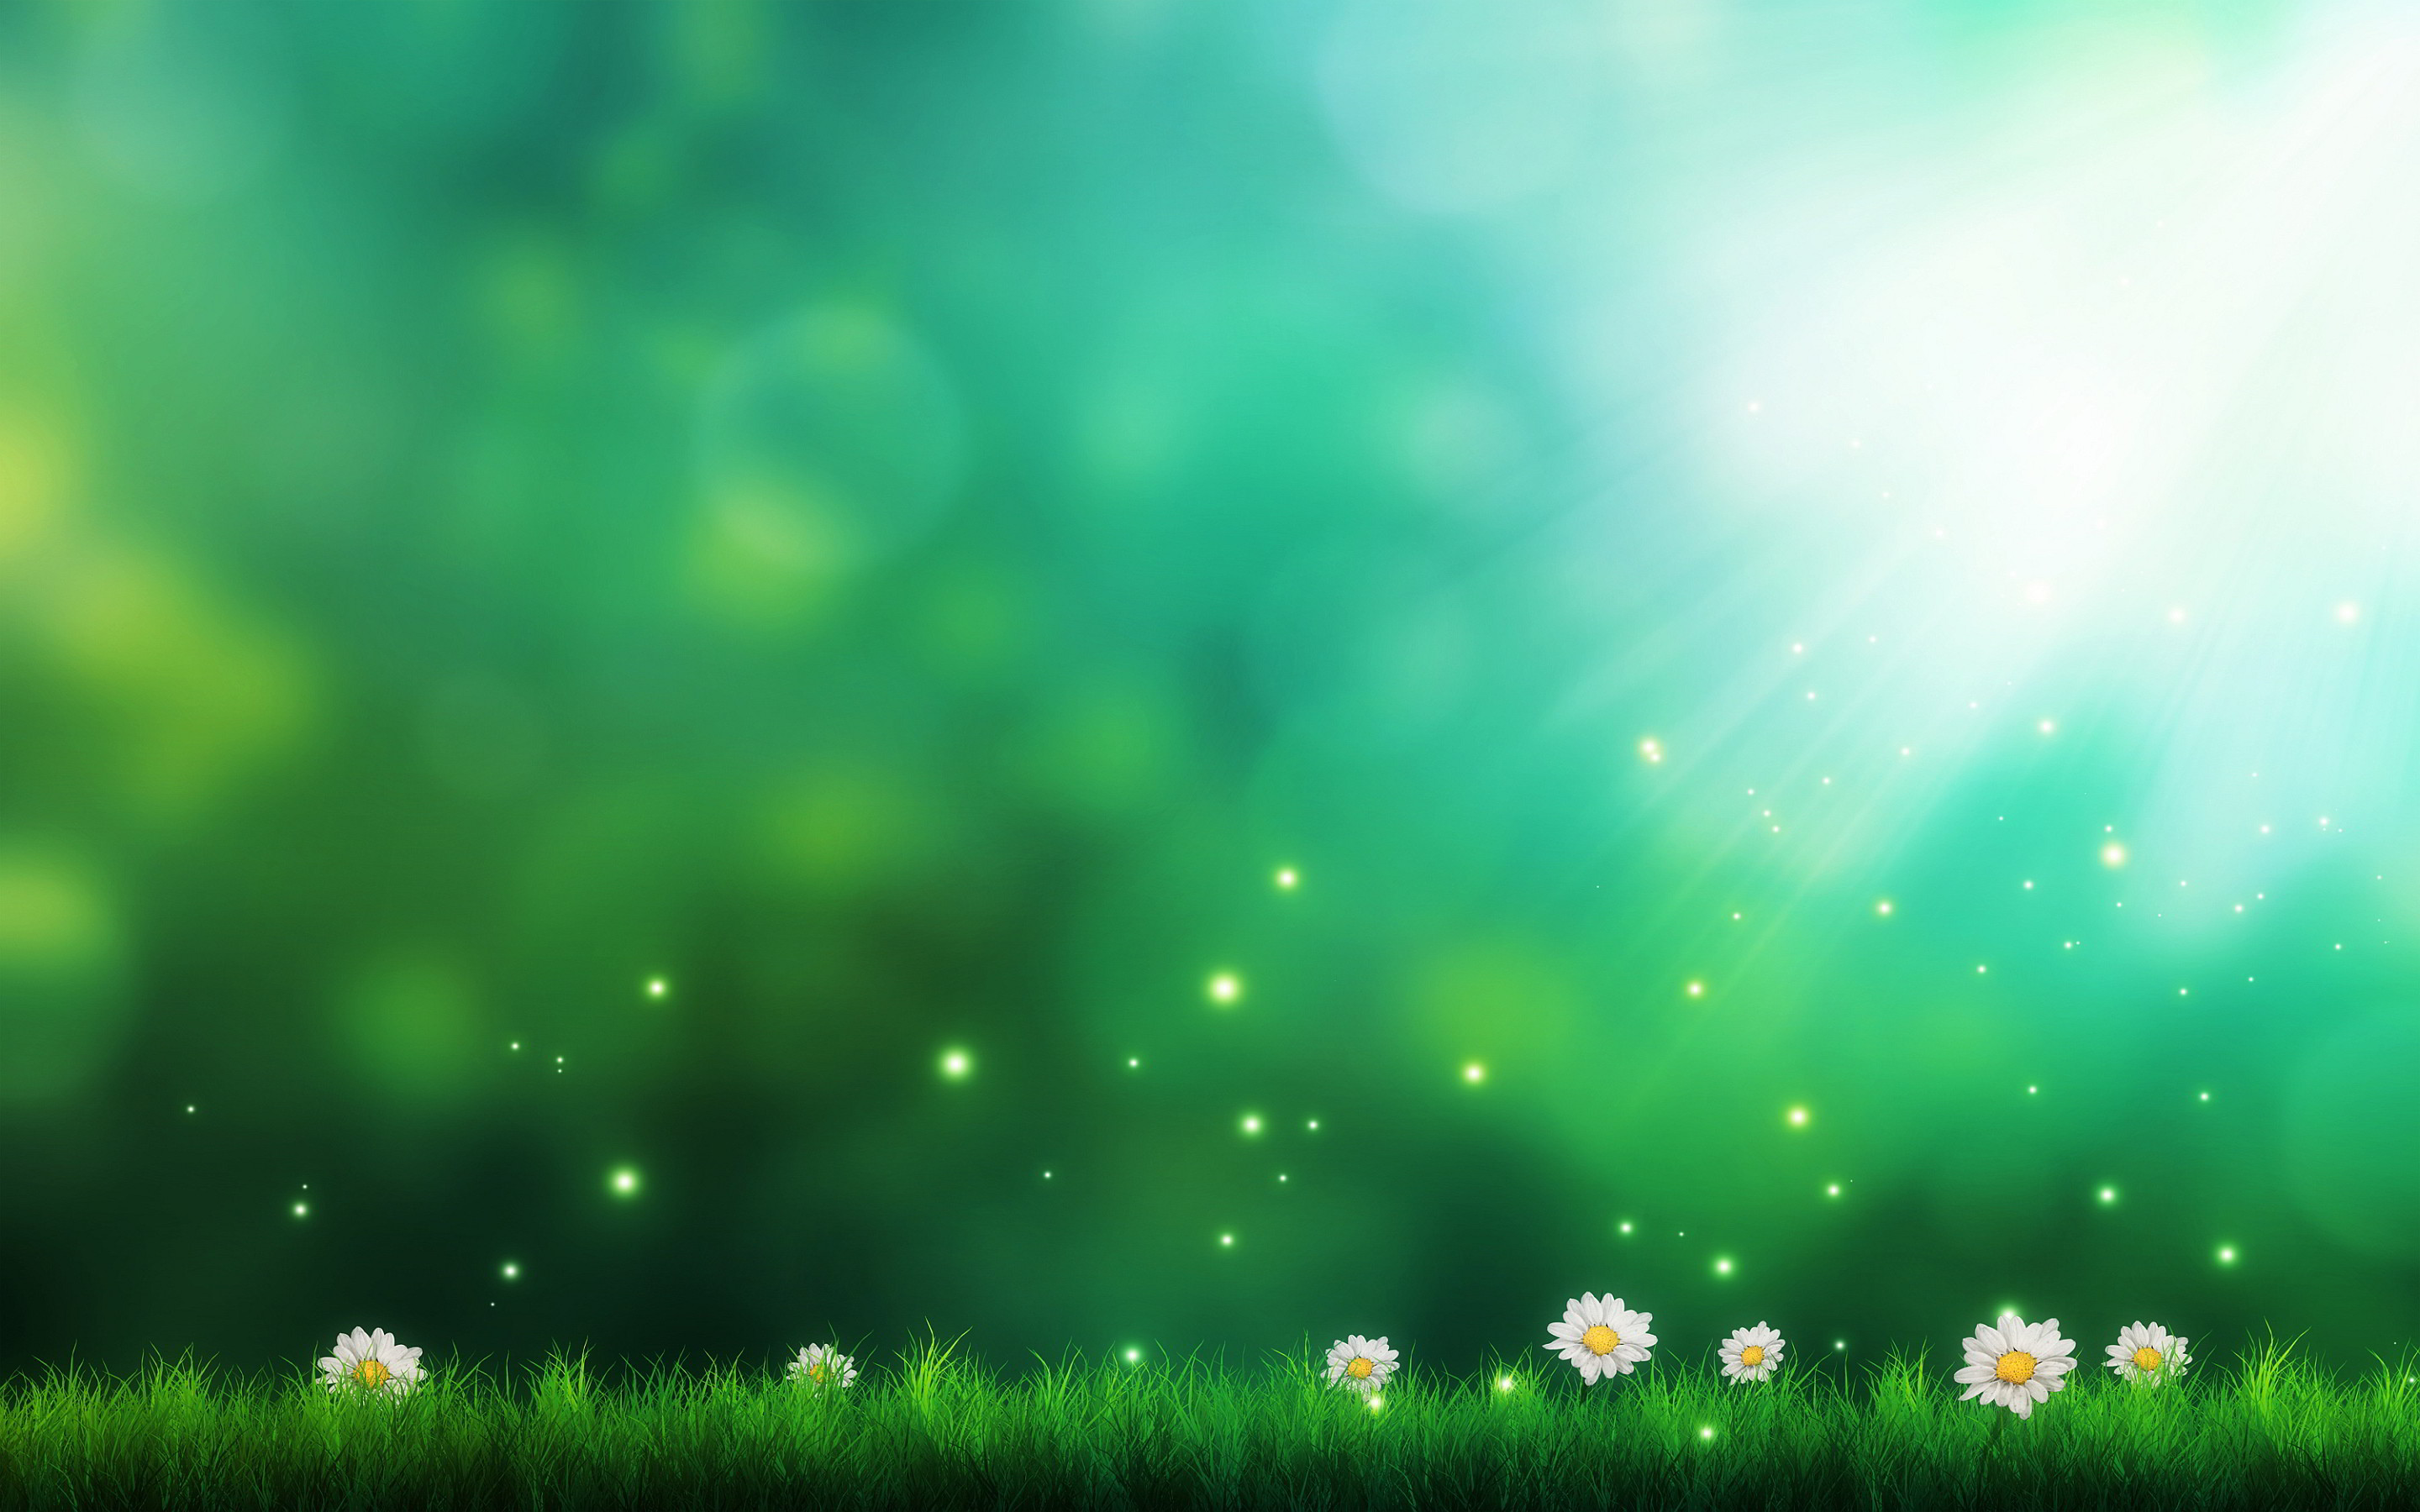 Daisies Green Background Wallpapers Pictures 2880x1800px